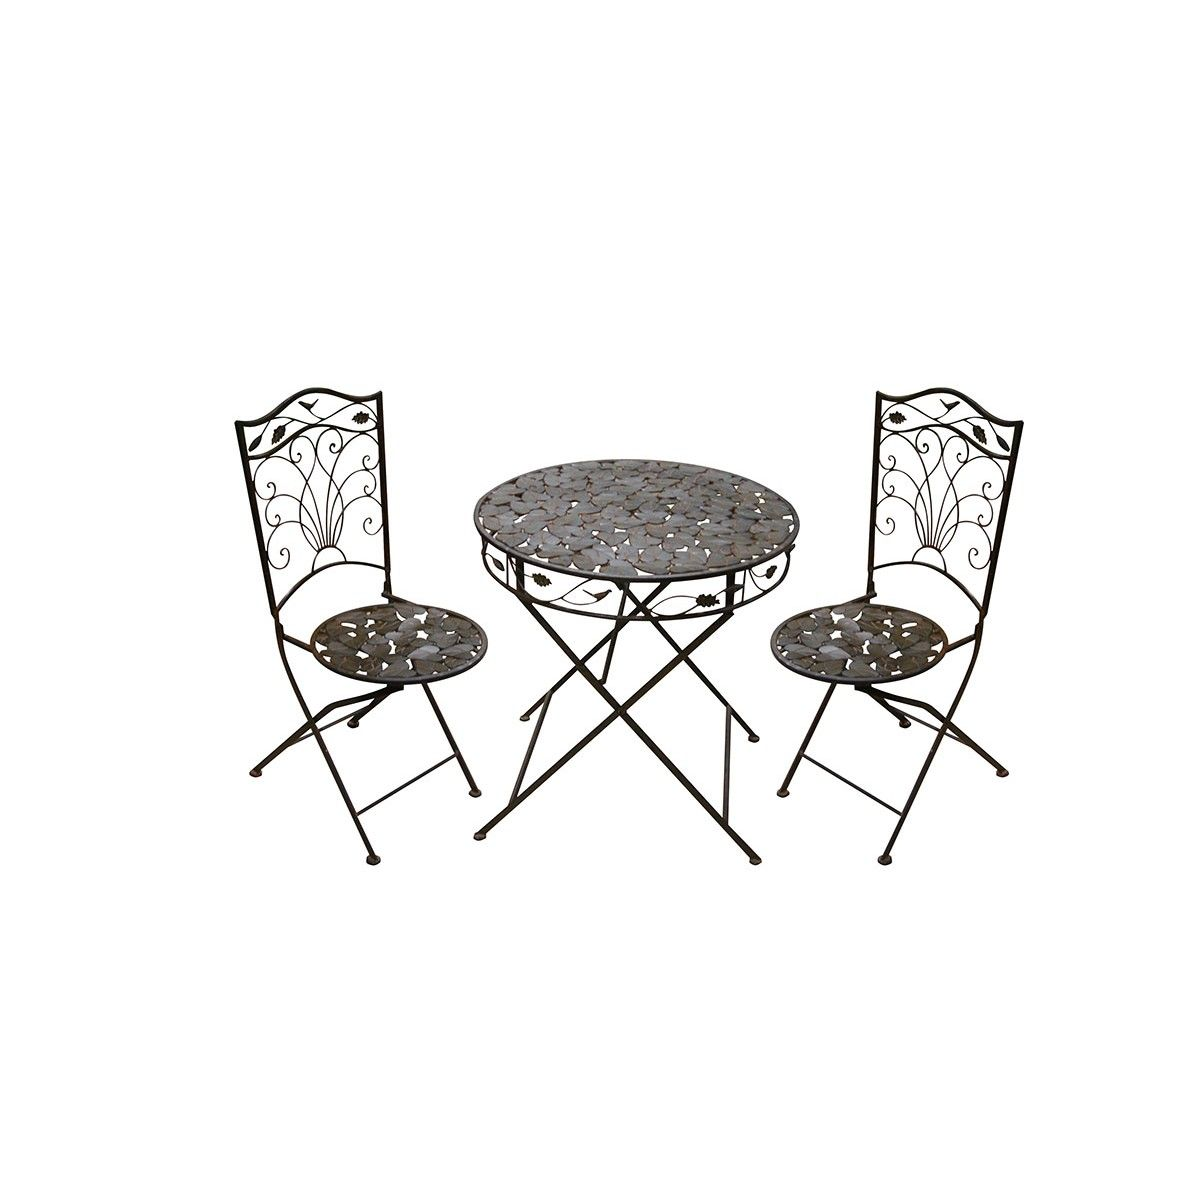 Modern Contemporary Patio Table And Chairs #13445 | Design ... on french outdoor rooms, french outdoor courtyards, french outdoor entertaining, french outdoor planters,